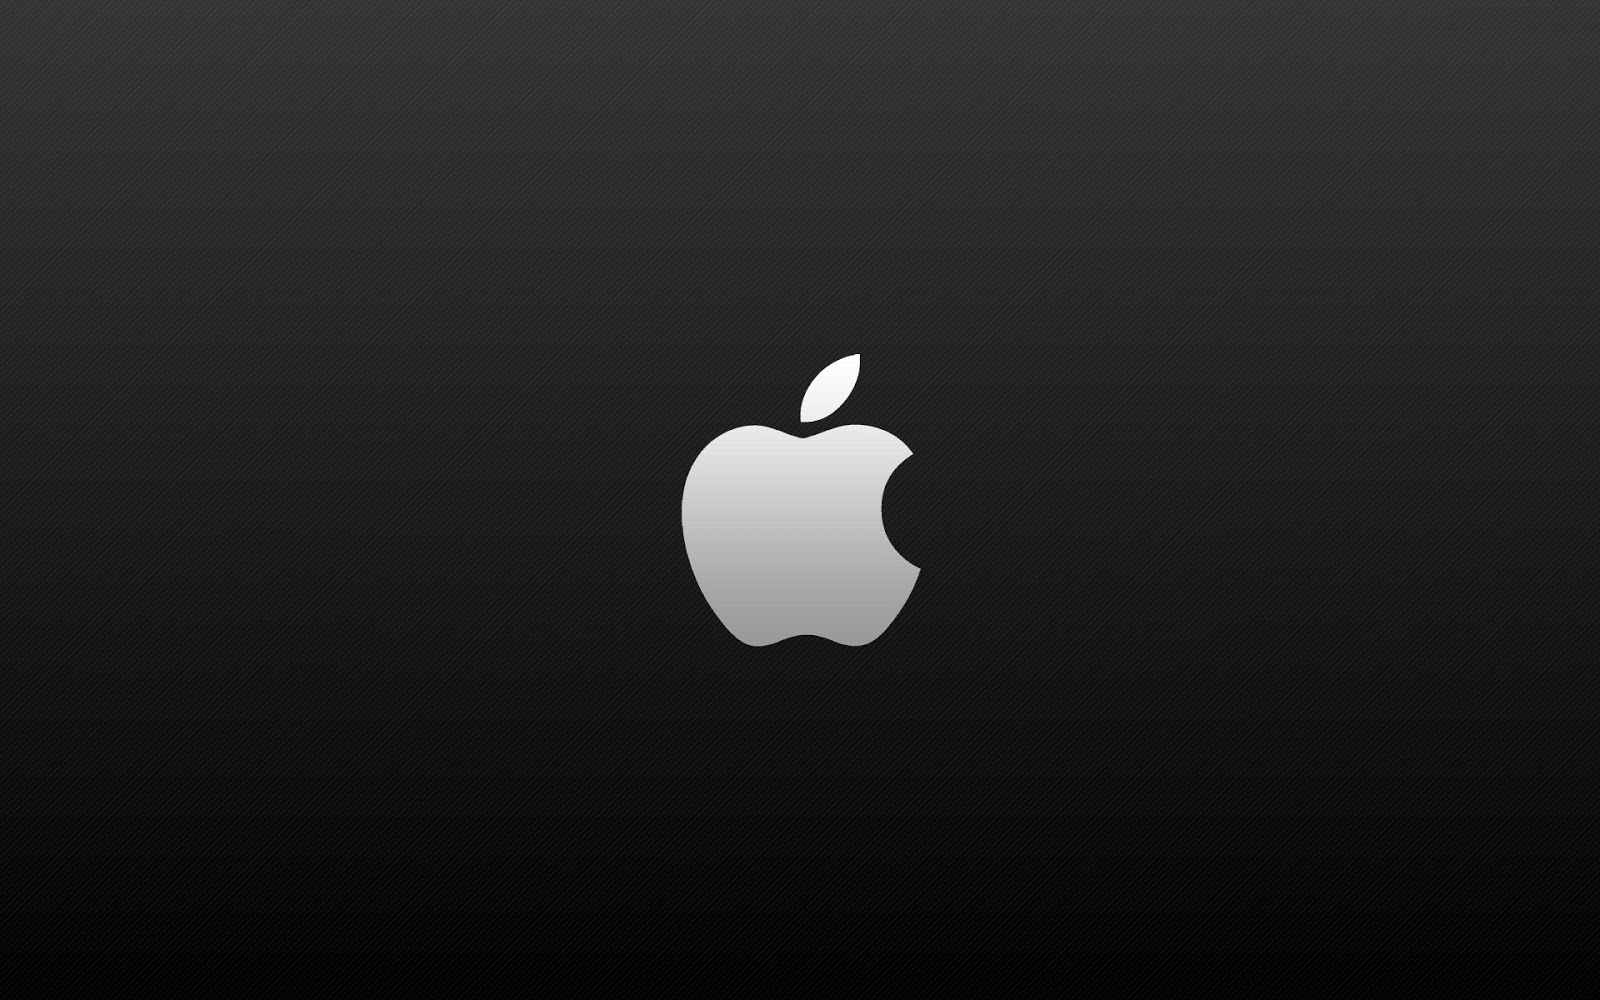 apple hd wallpapers 1080p | hd wallpapers (high definition) | free